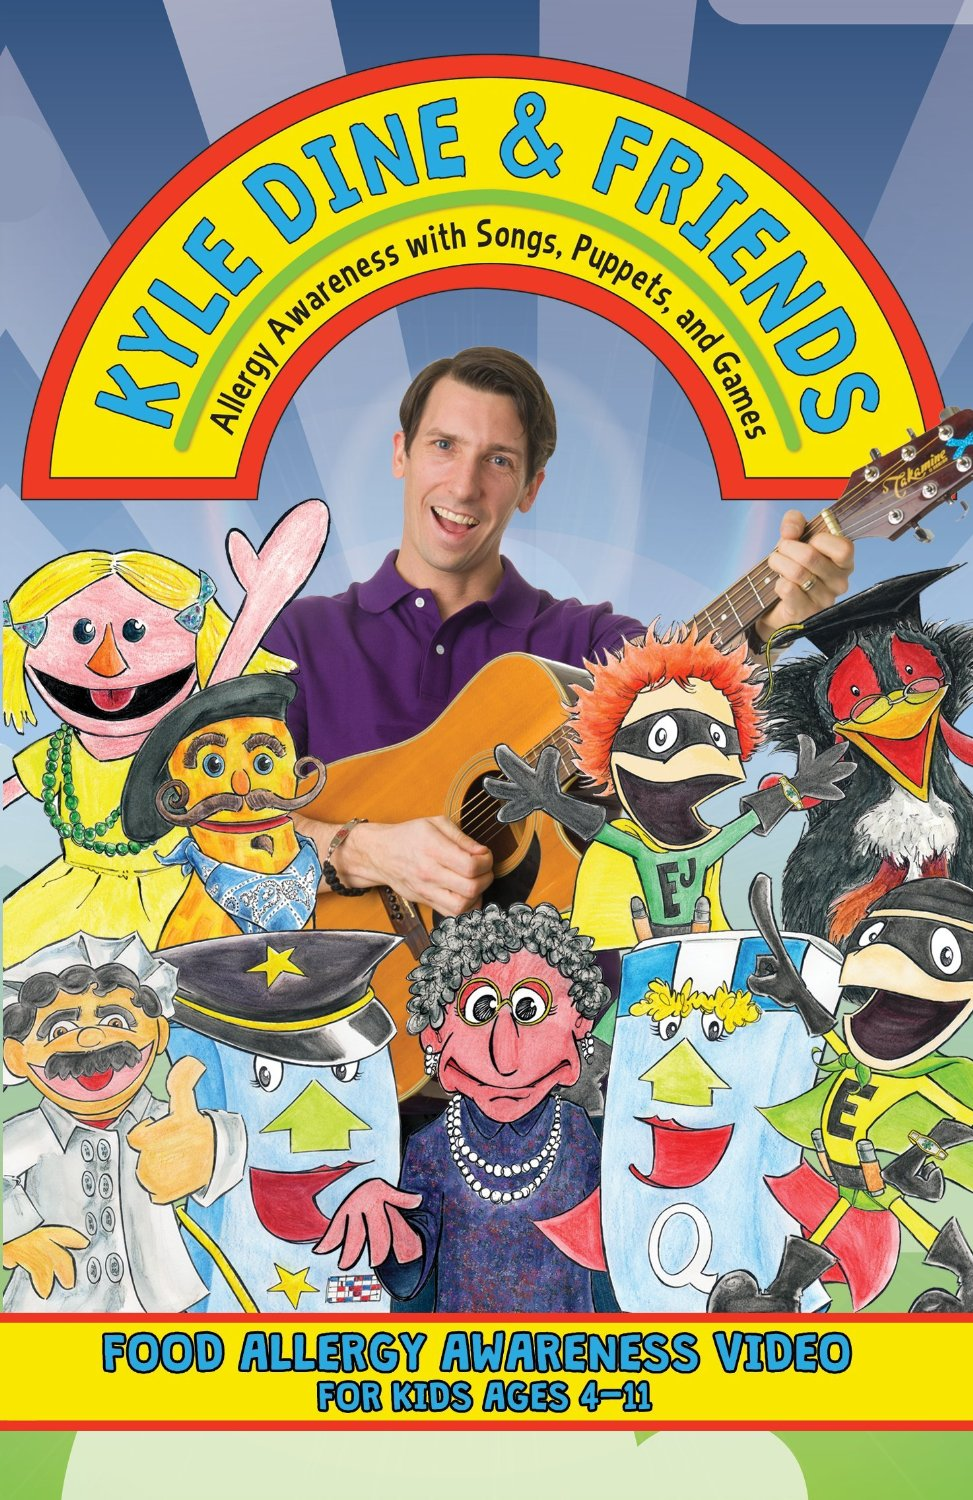 Kyle Dine & Friends: Allergy Awareness with Songs, Puppets, and Games